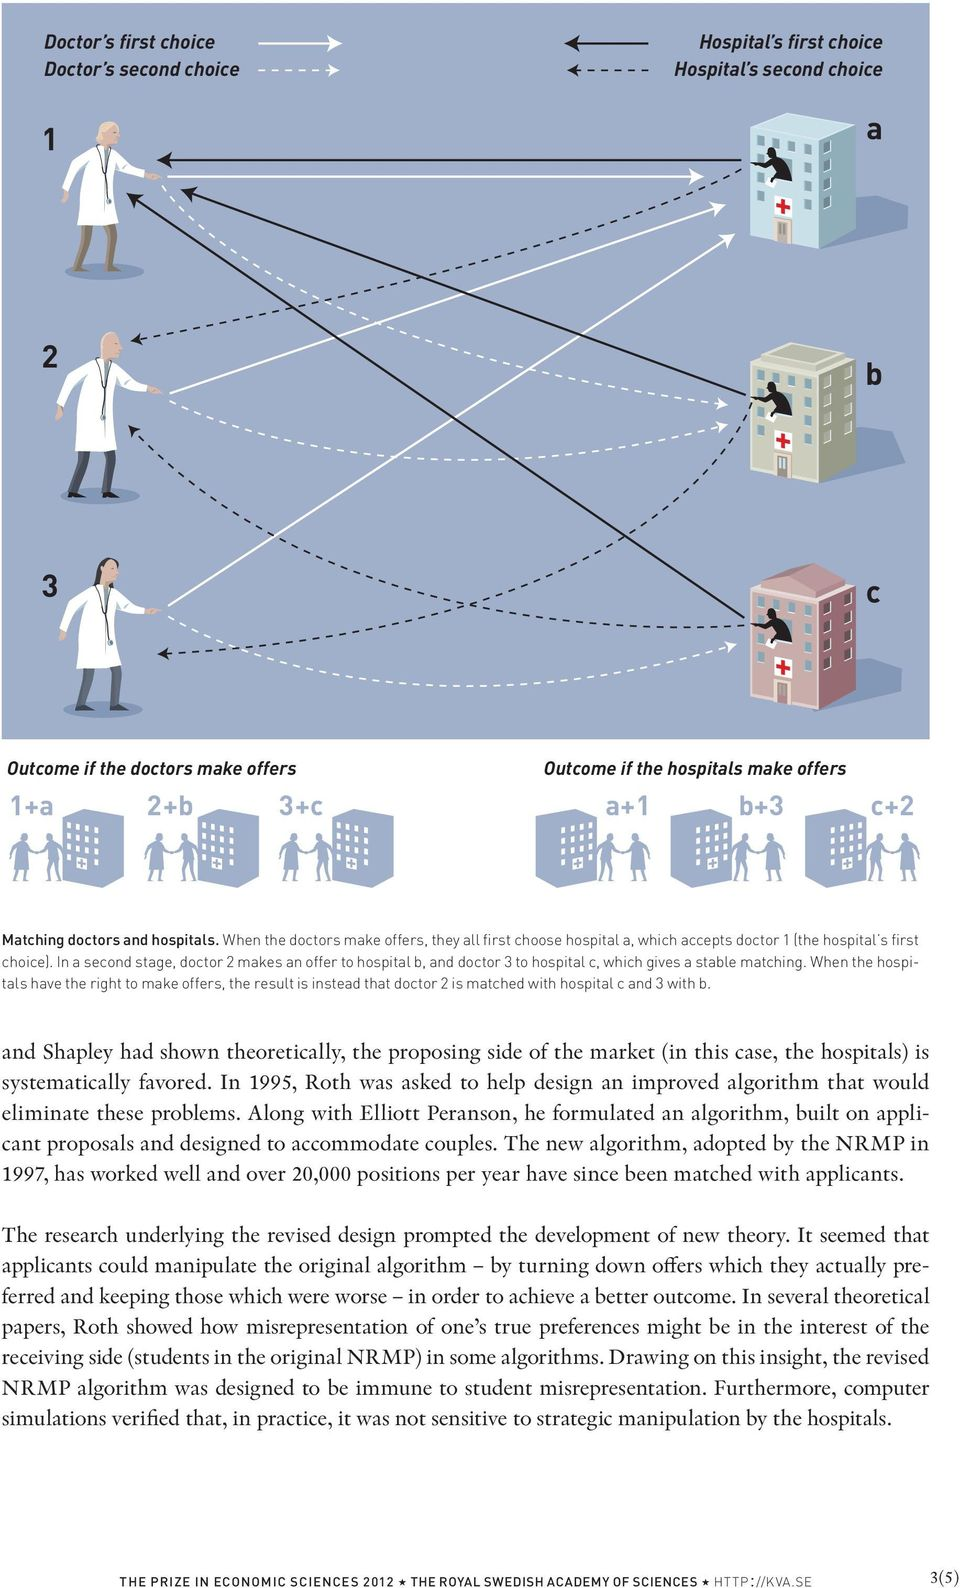 In a second stage, doctor 2 makes an offer to hospital b, and doctor 3 to hospital c, which gives a stable matching.